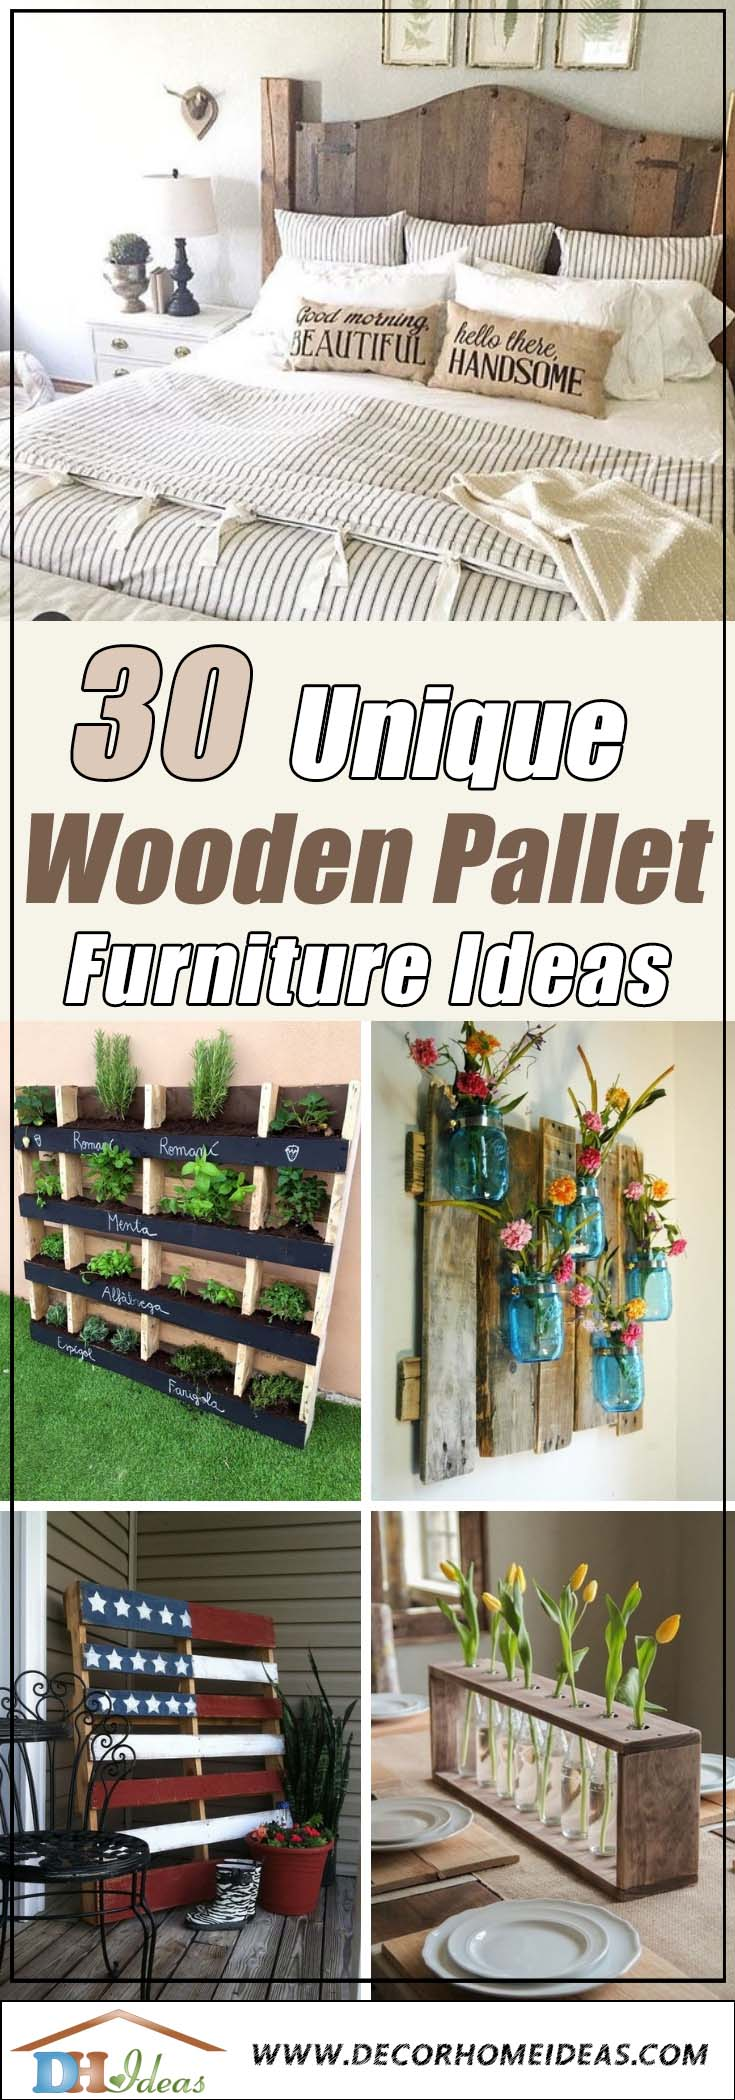 30 Ways of Turning Wooden Pallets Into Unique Pieces of Furniture | Get some amazing ideas on DIY wooden pallet furniture and decoration. #pallet #pallets #diy #old #furniture #makeover #repurpose #wooden #wood #decoratingideas #decorhomeideas